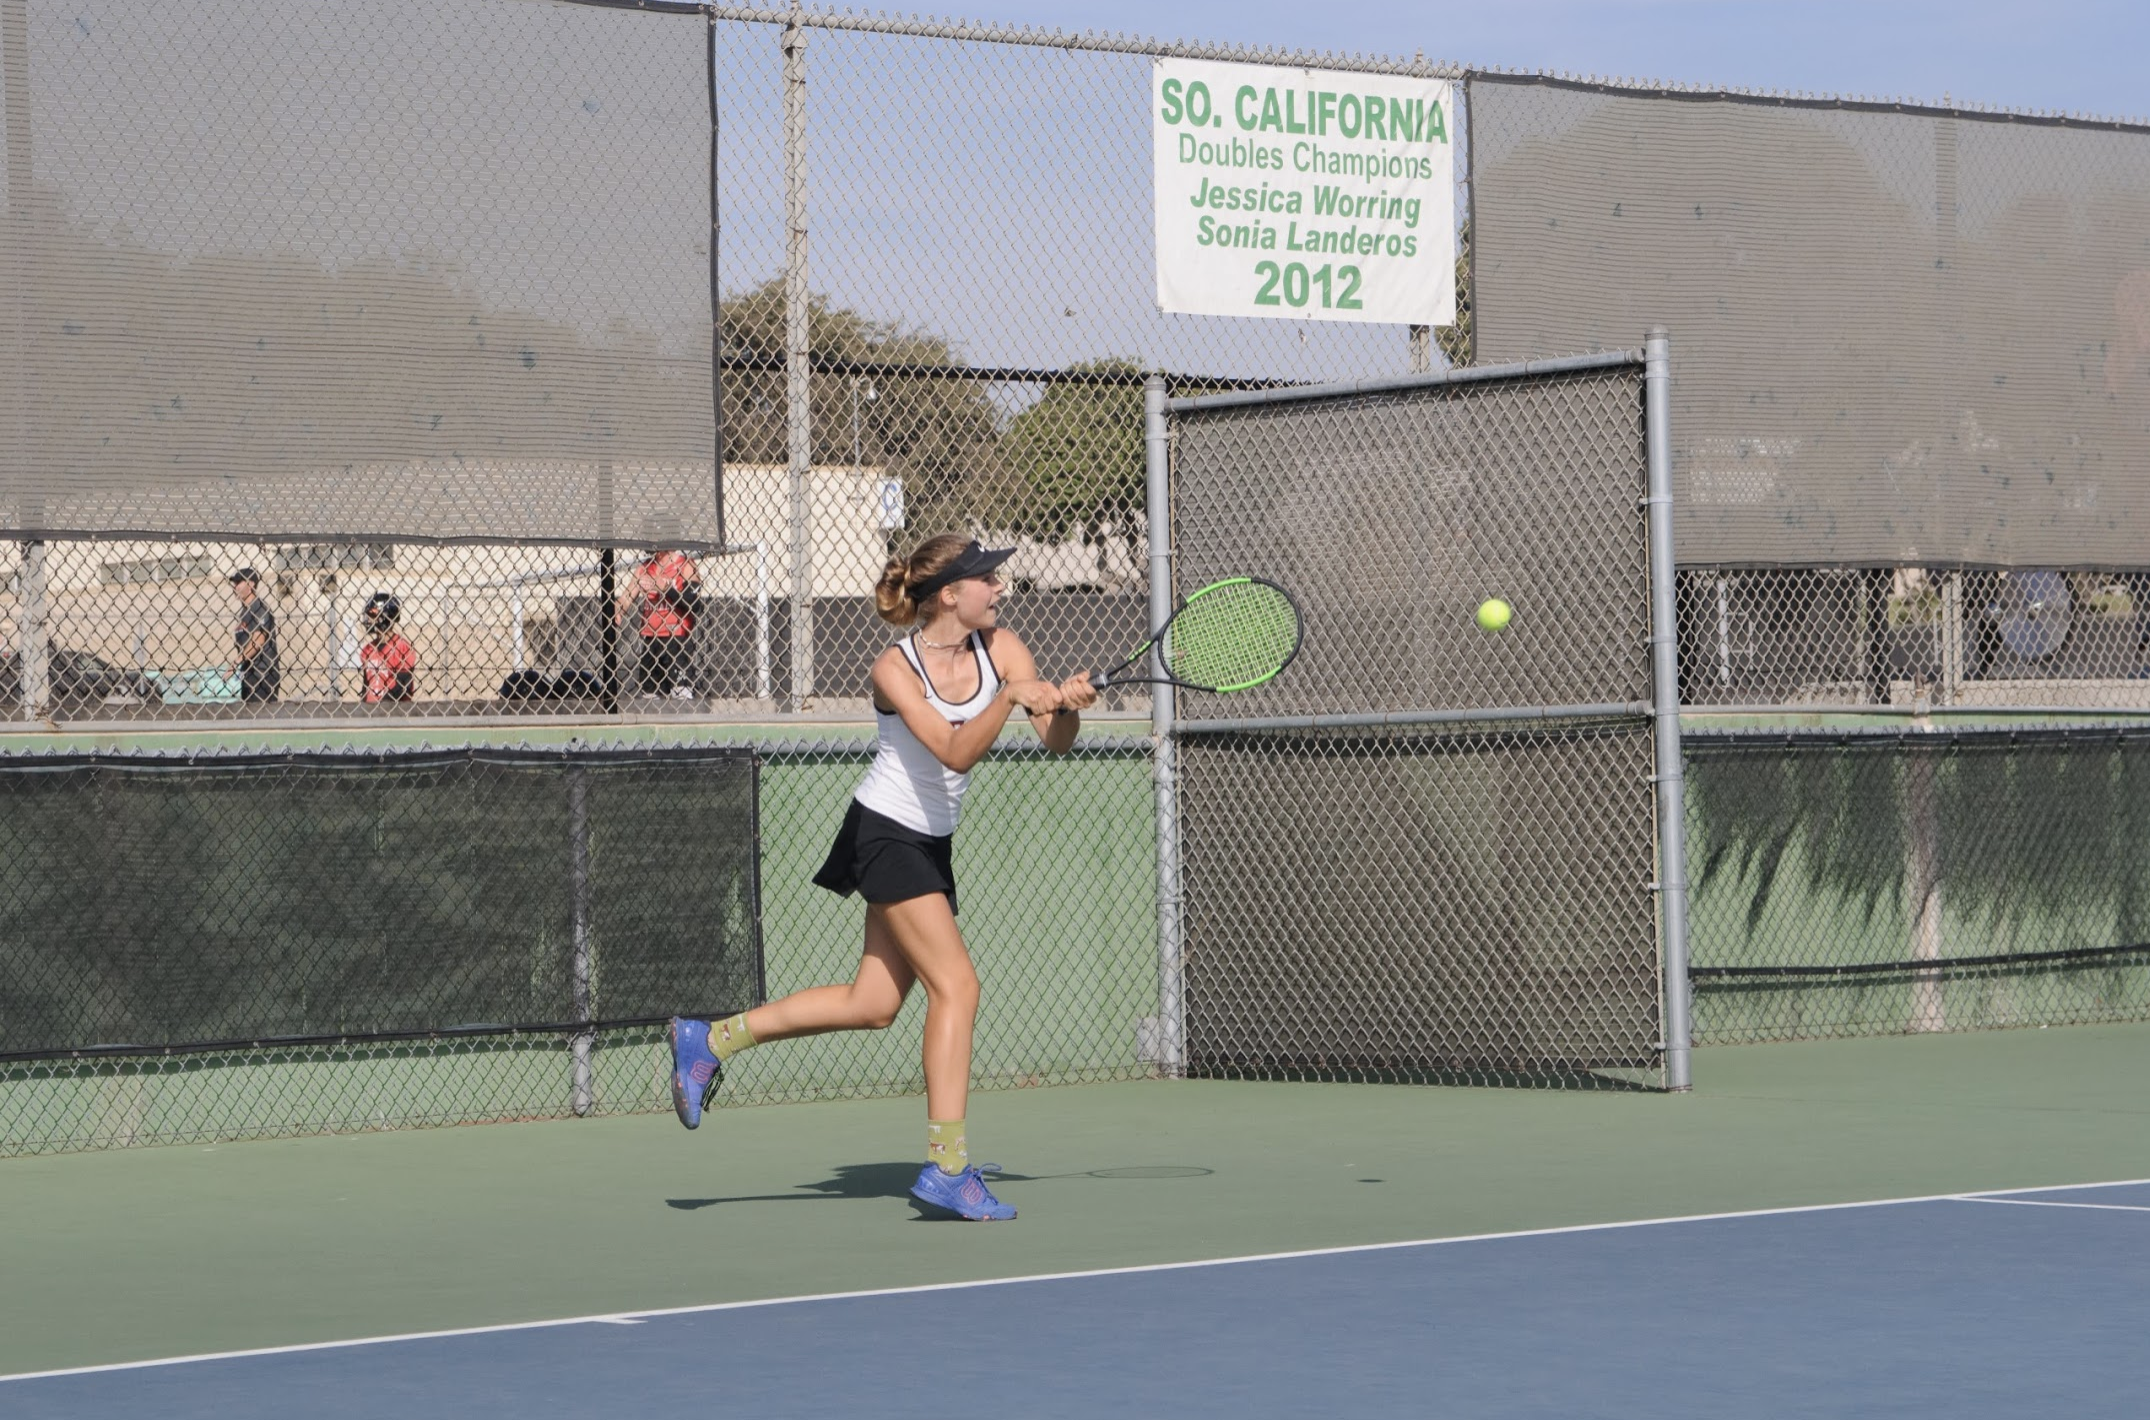 Noelle Hayward '21 gets a point after hitting a firm ball towards her opponent. Credit: Muriel Rowley / The Foothill Dragon Press